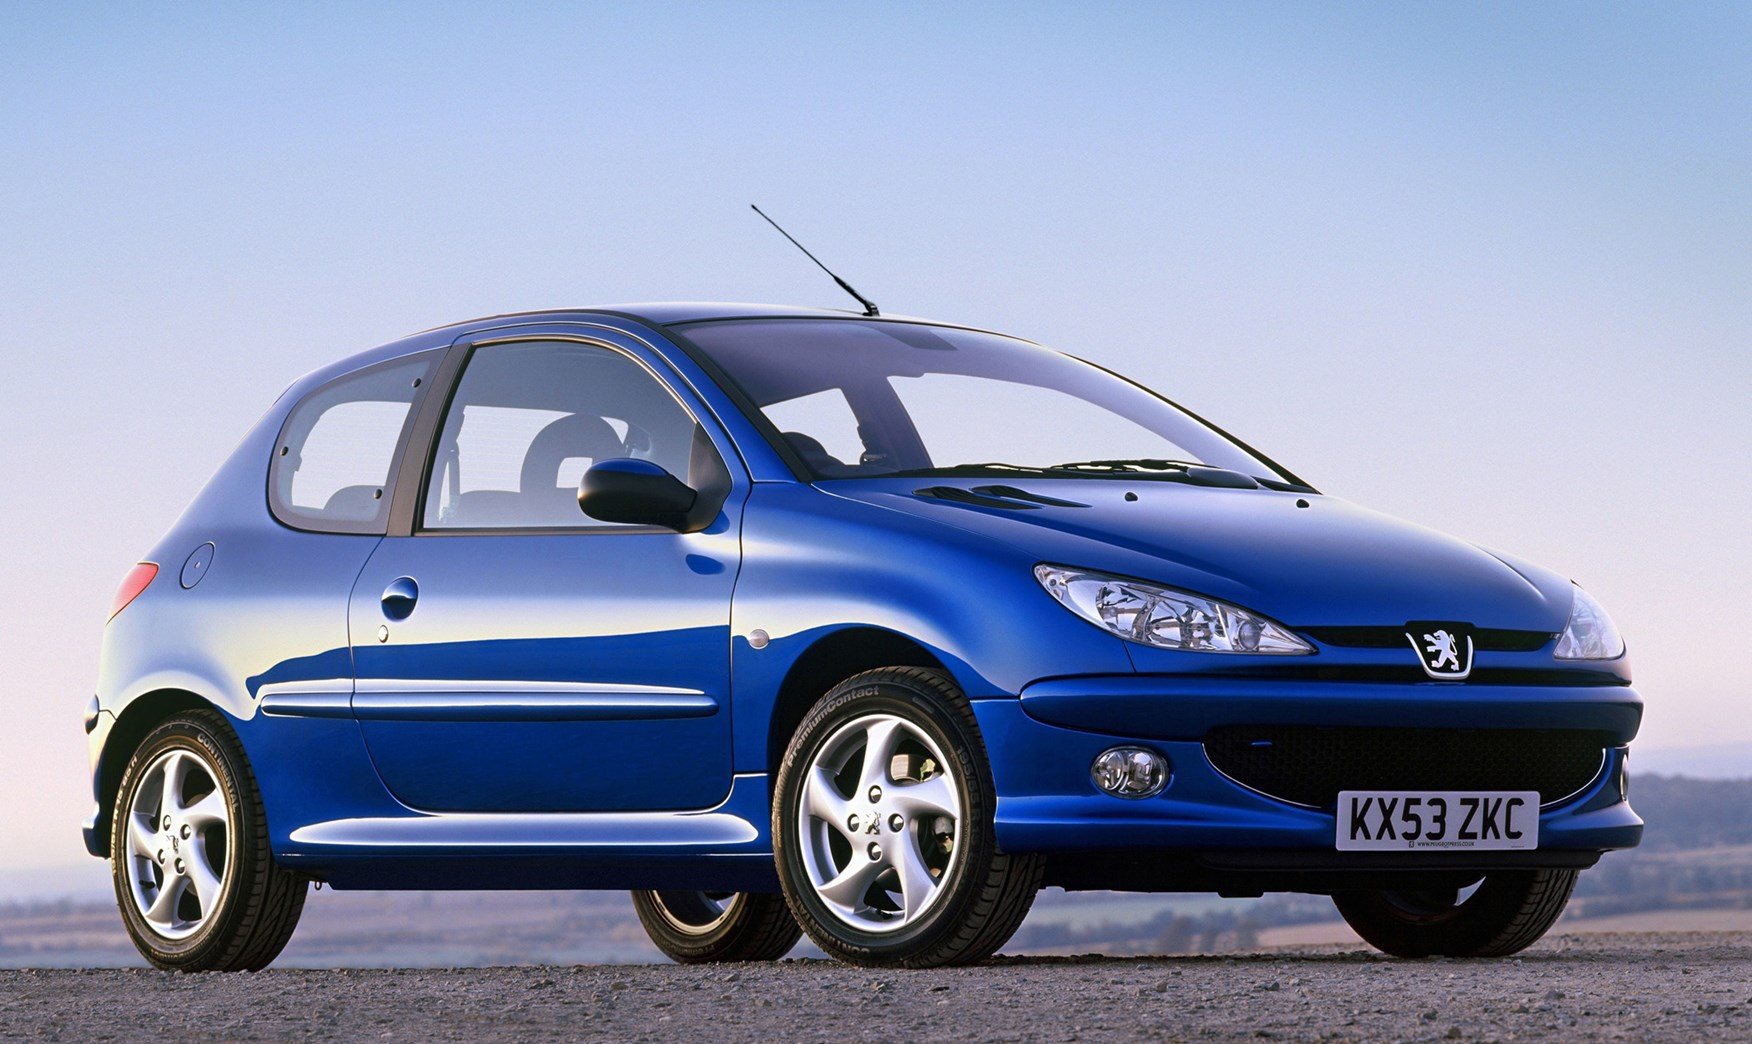 Peugeot 206 1998 - 2012 Hatchback 5 door #1